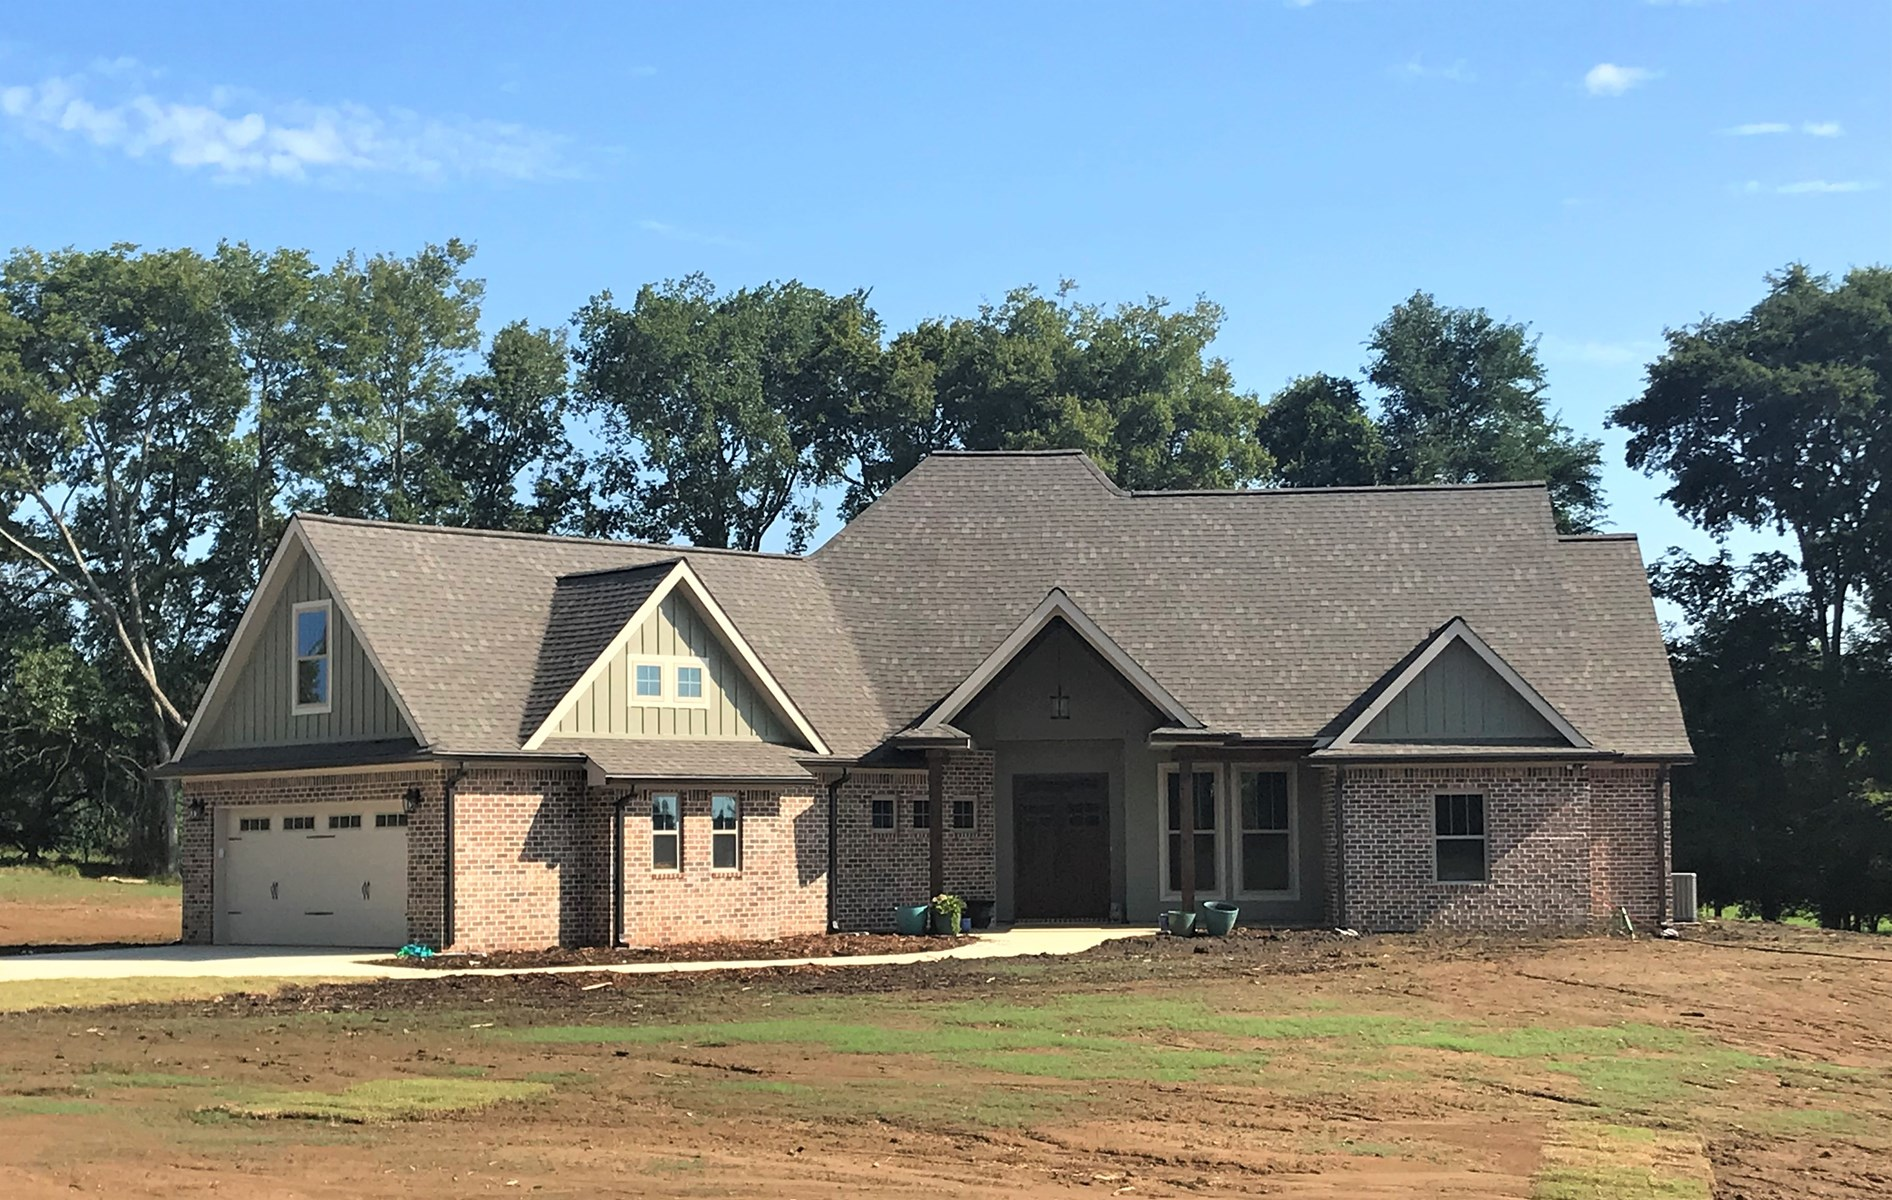 NEW CONSTRUCTION IN IRONWOOD SUBDIVISION